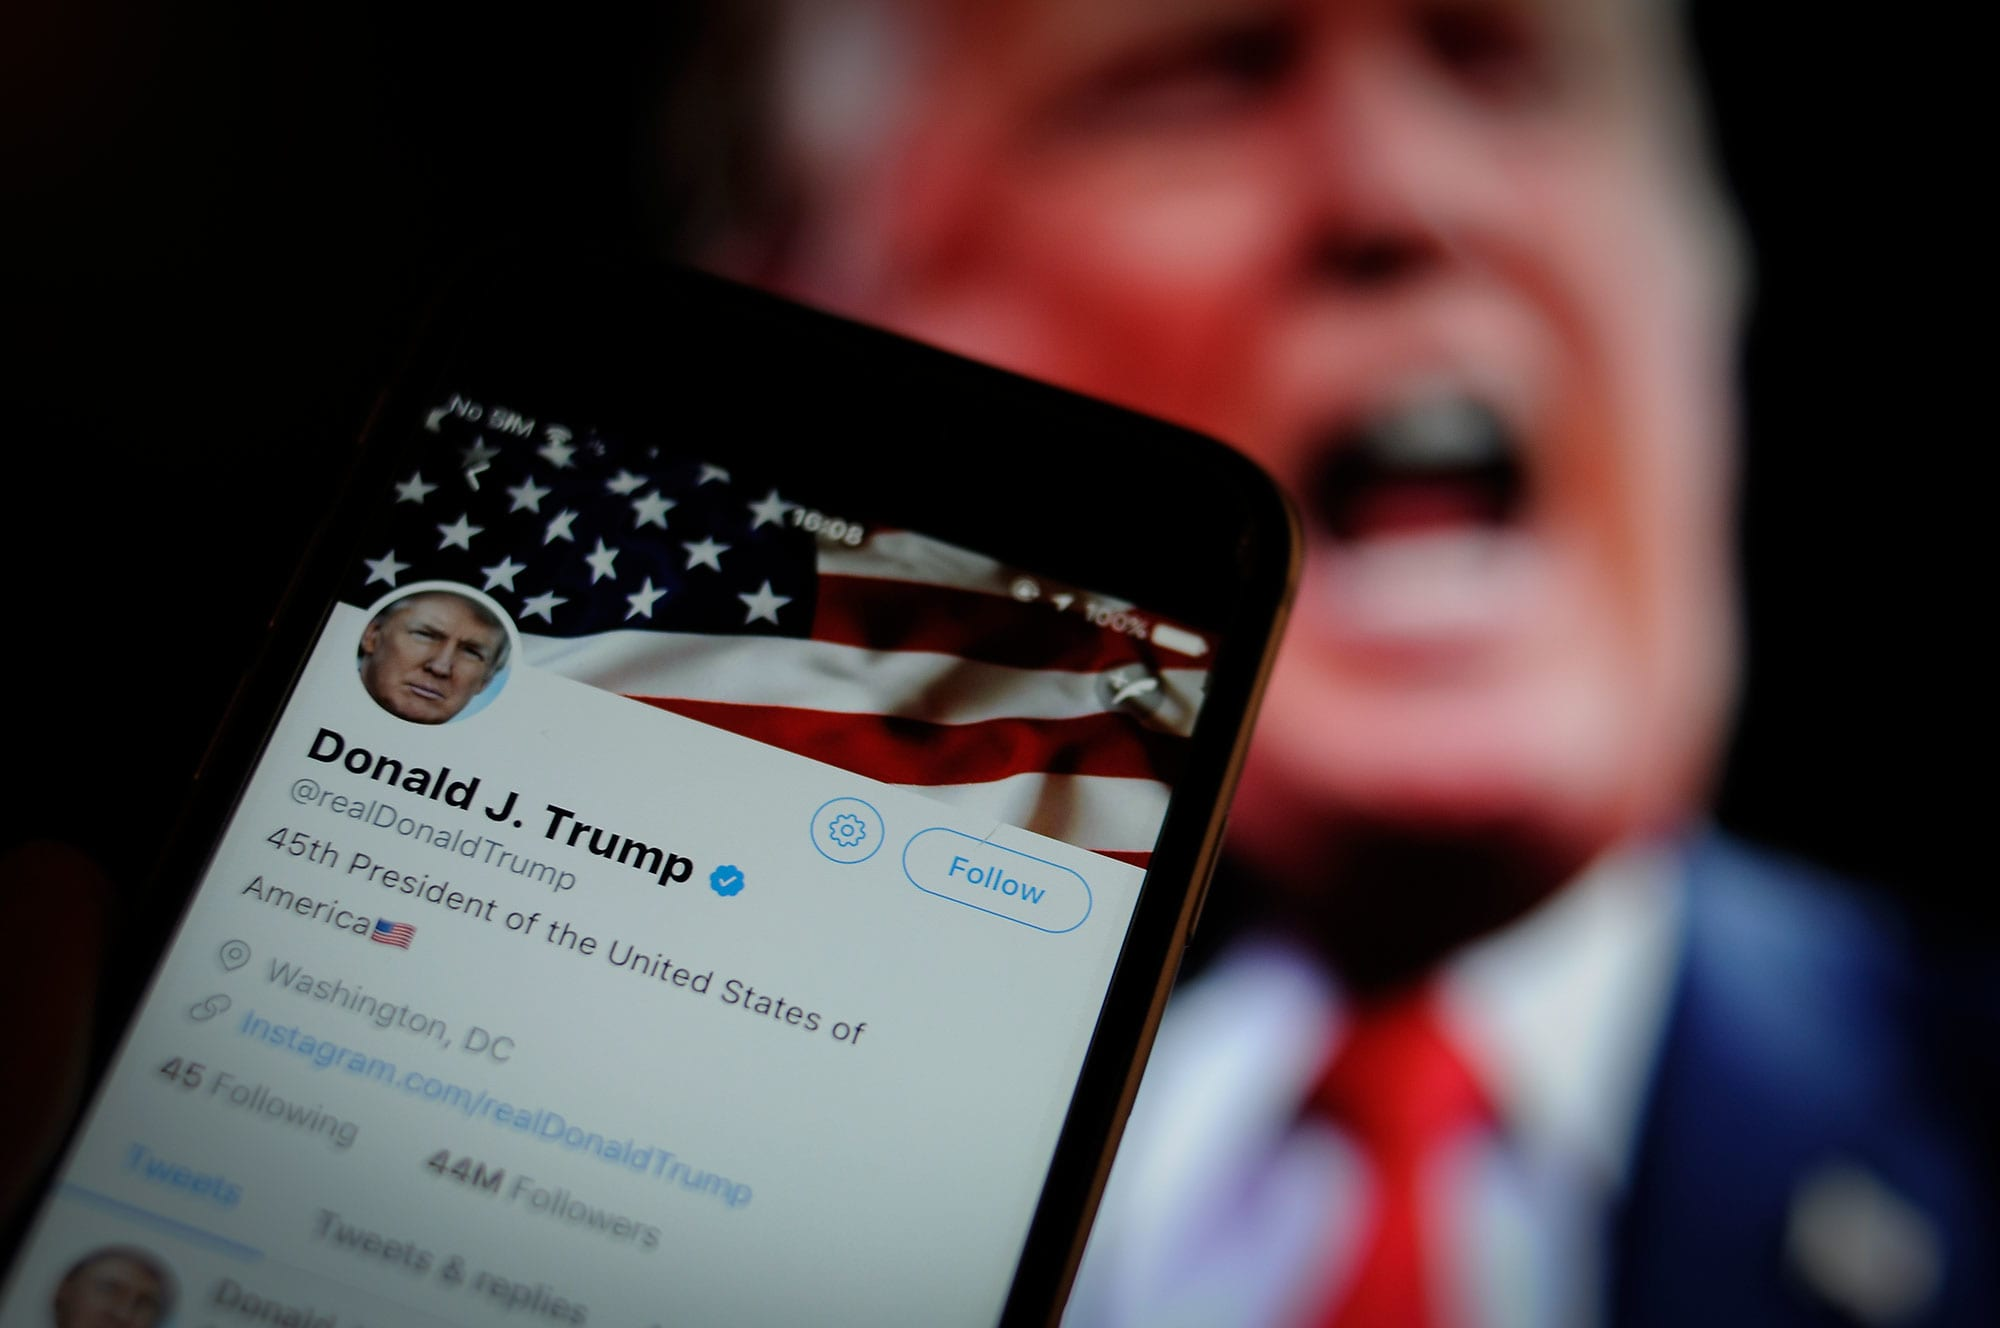 Trump: We don't want to go back to Twitter. It got very boring there